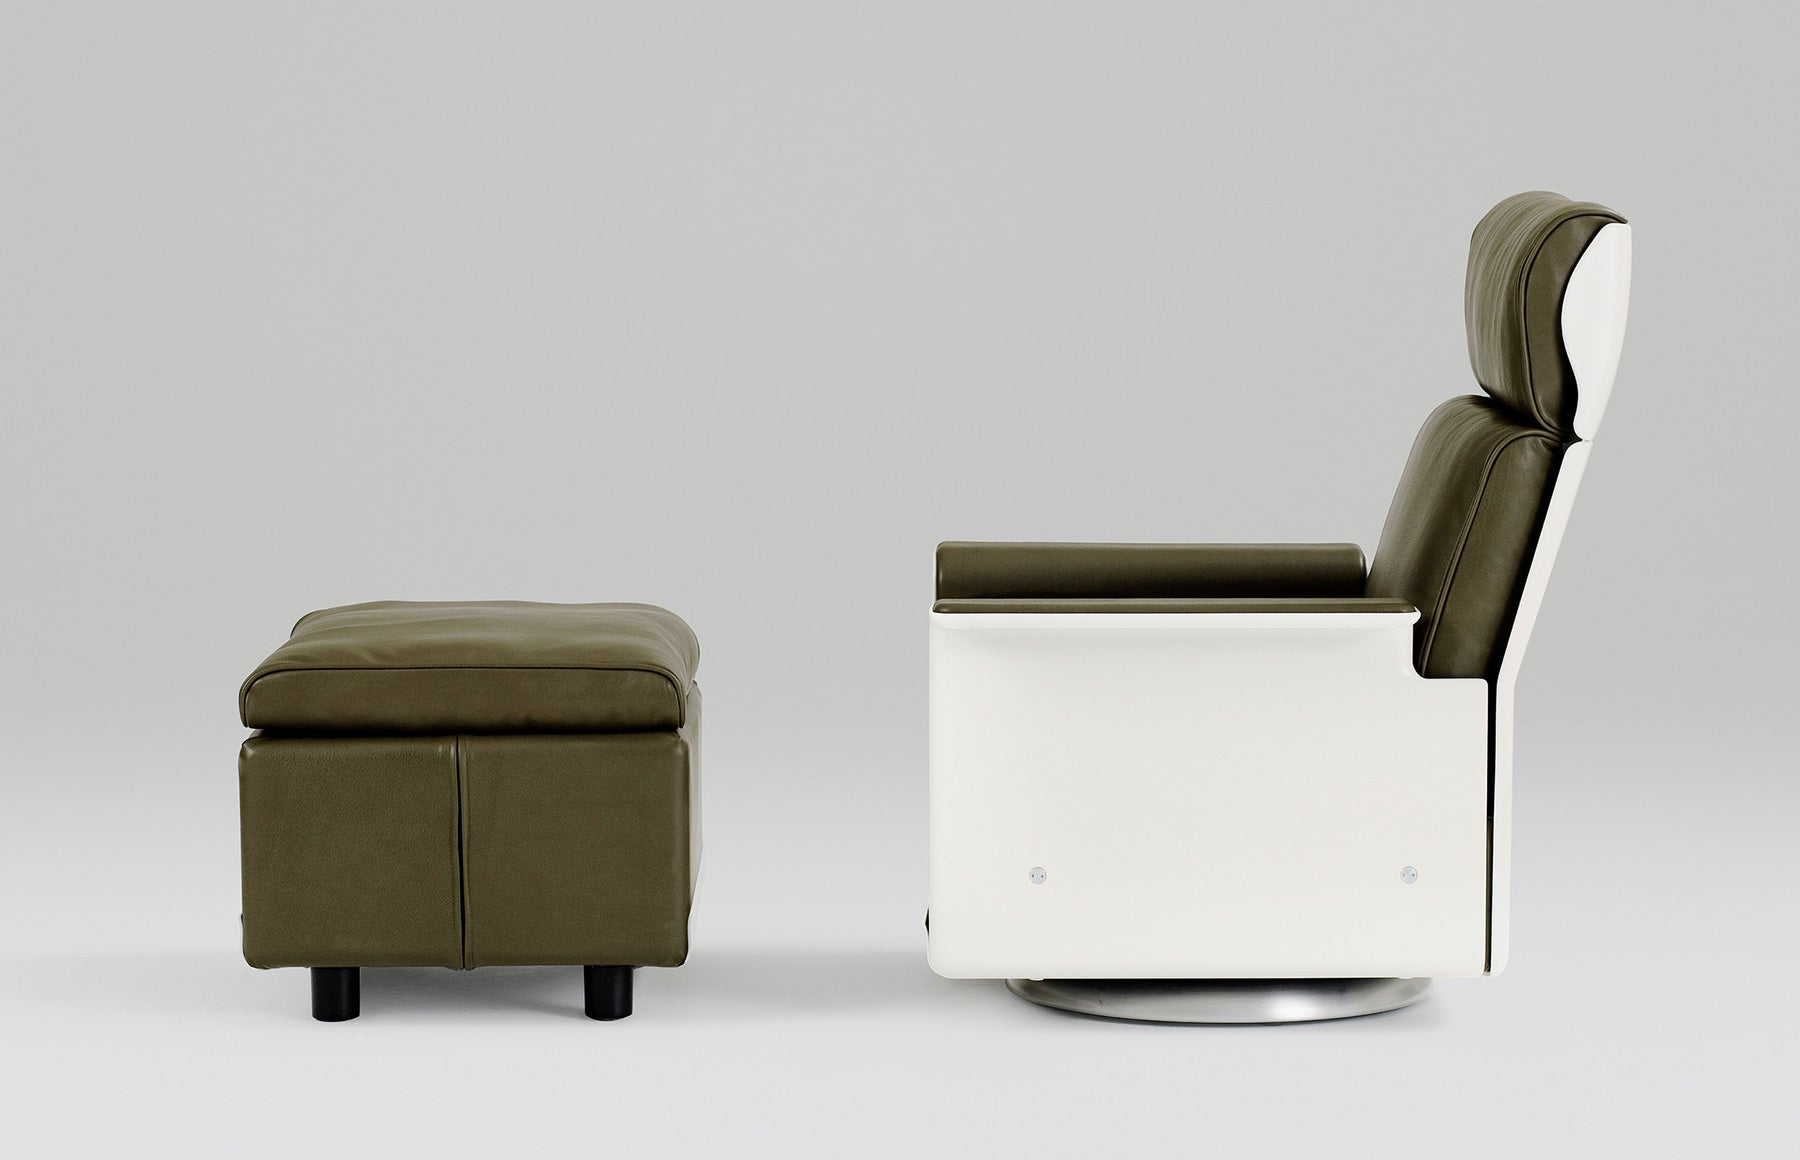 Dieter Rams Philadelphia Museum of Art Principled Design Vitsœ 620 seating system armchair and footstool